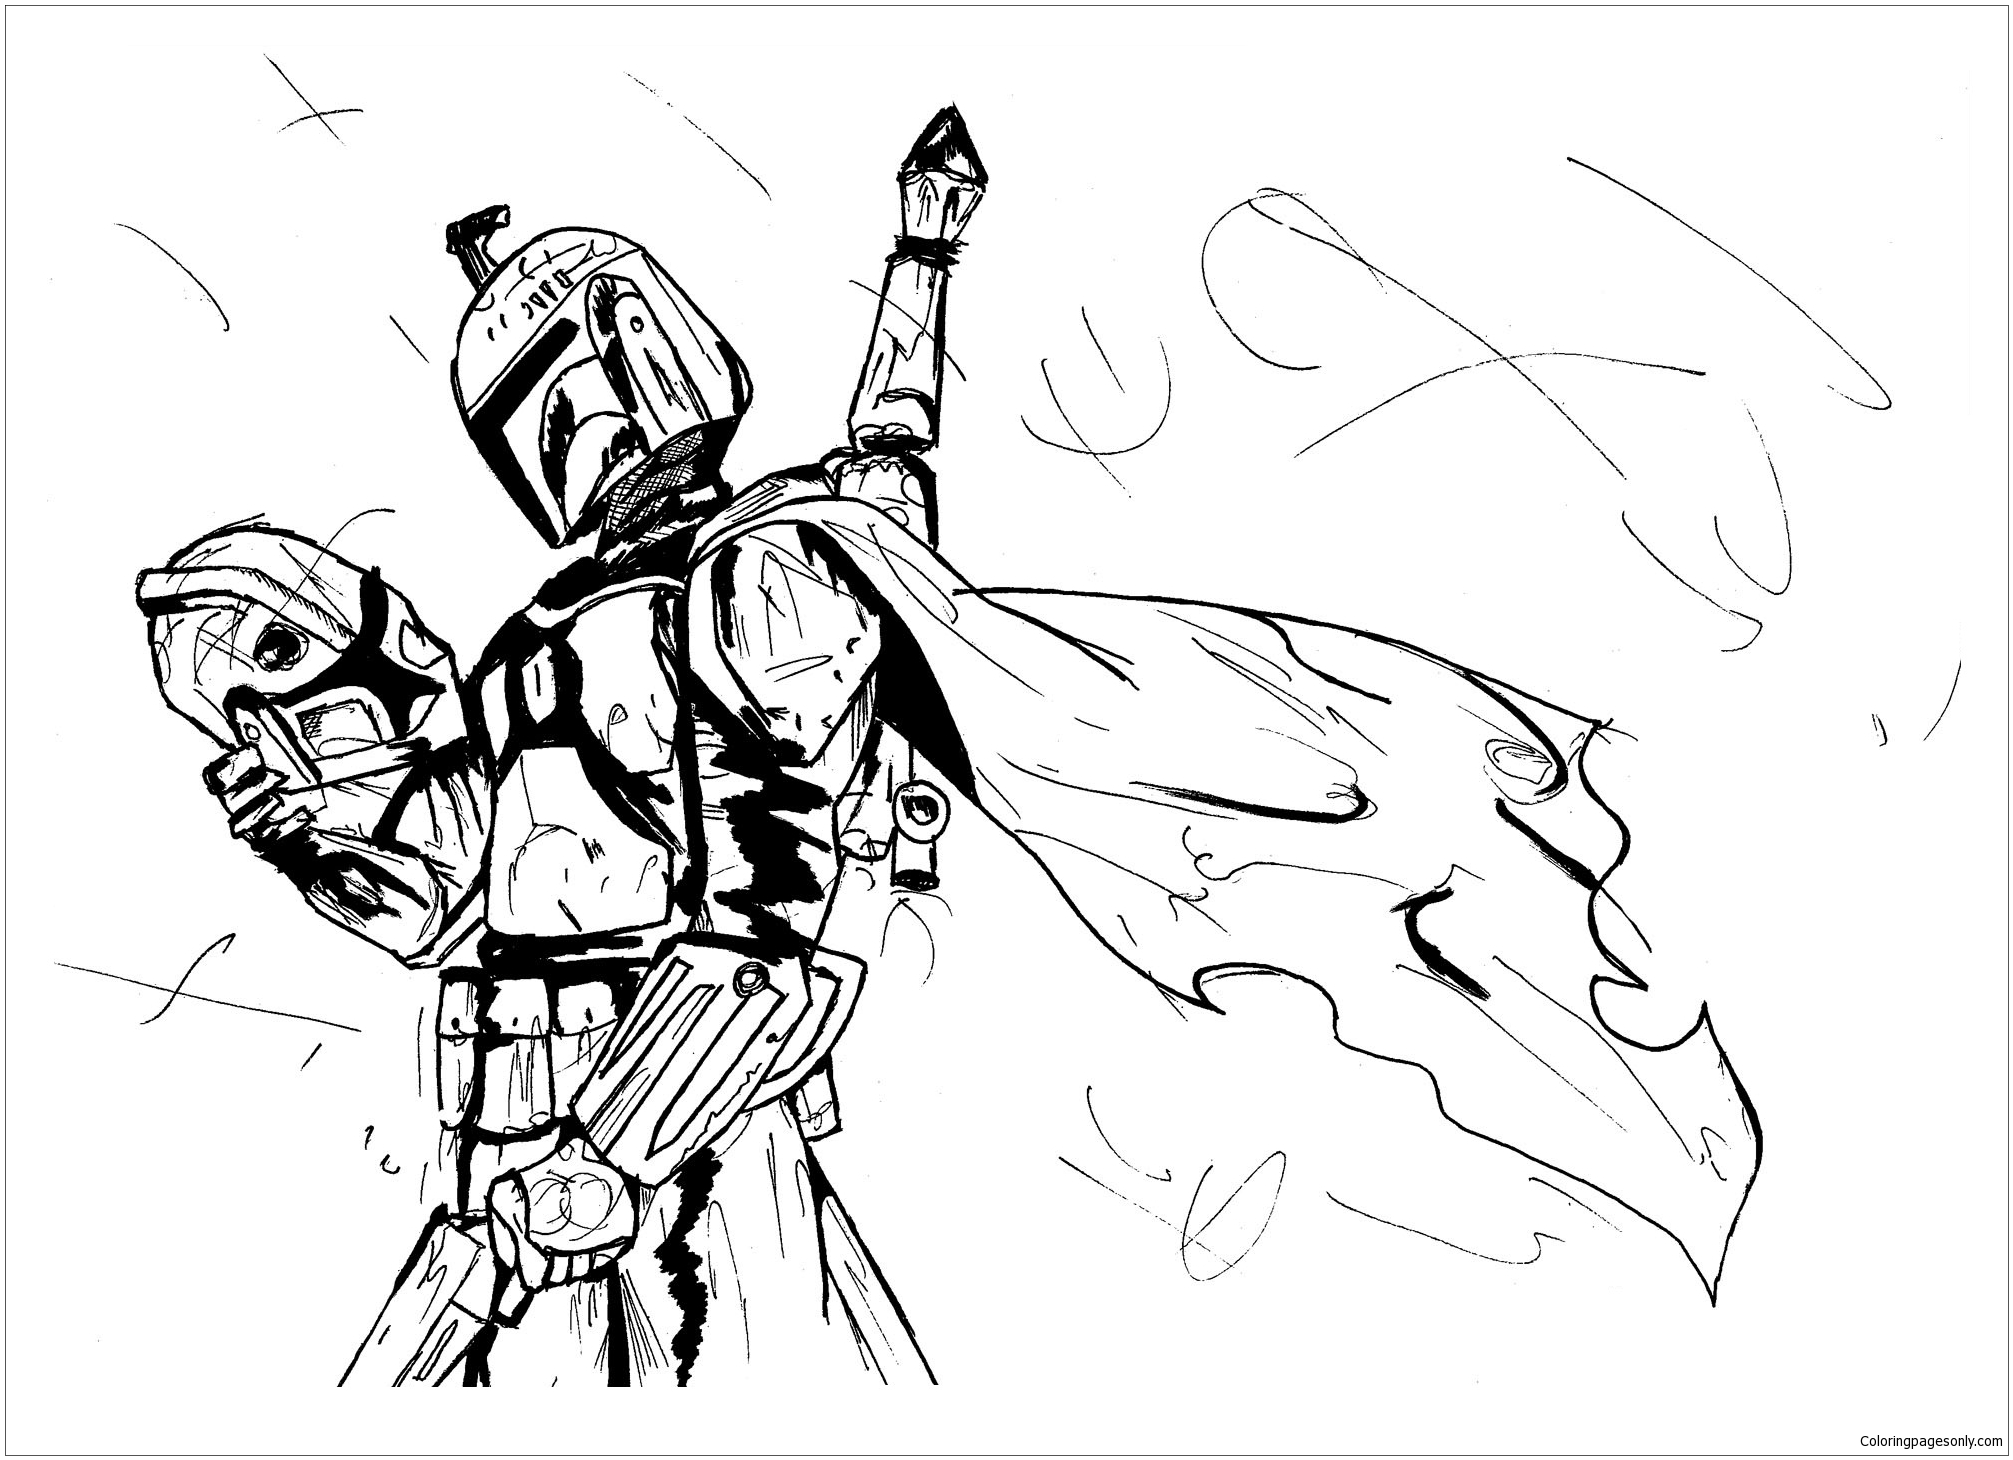 Star Wars Boba Fett Coloring Page - Free Coloring Pages Online